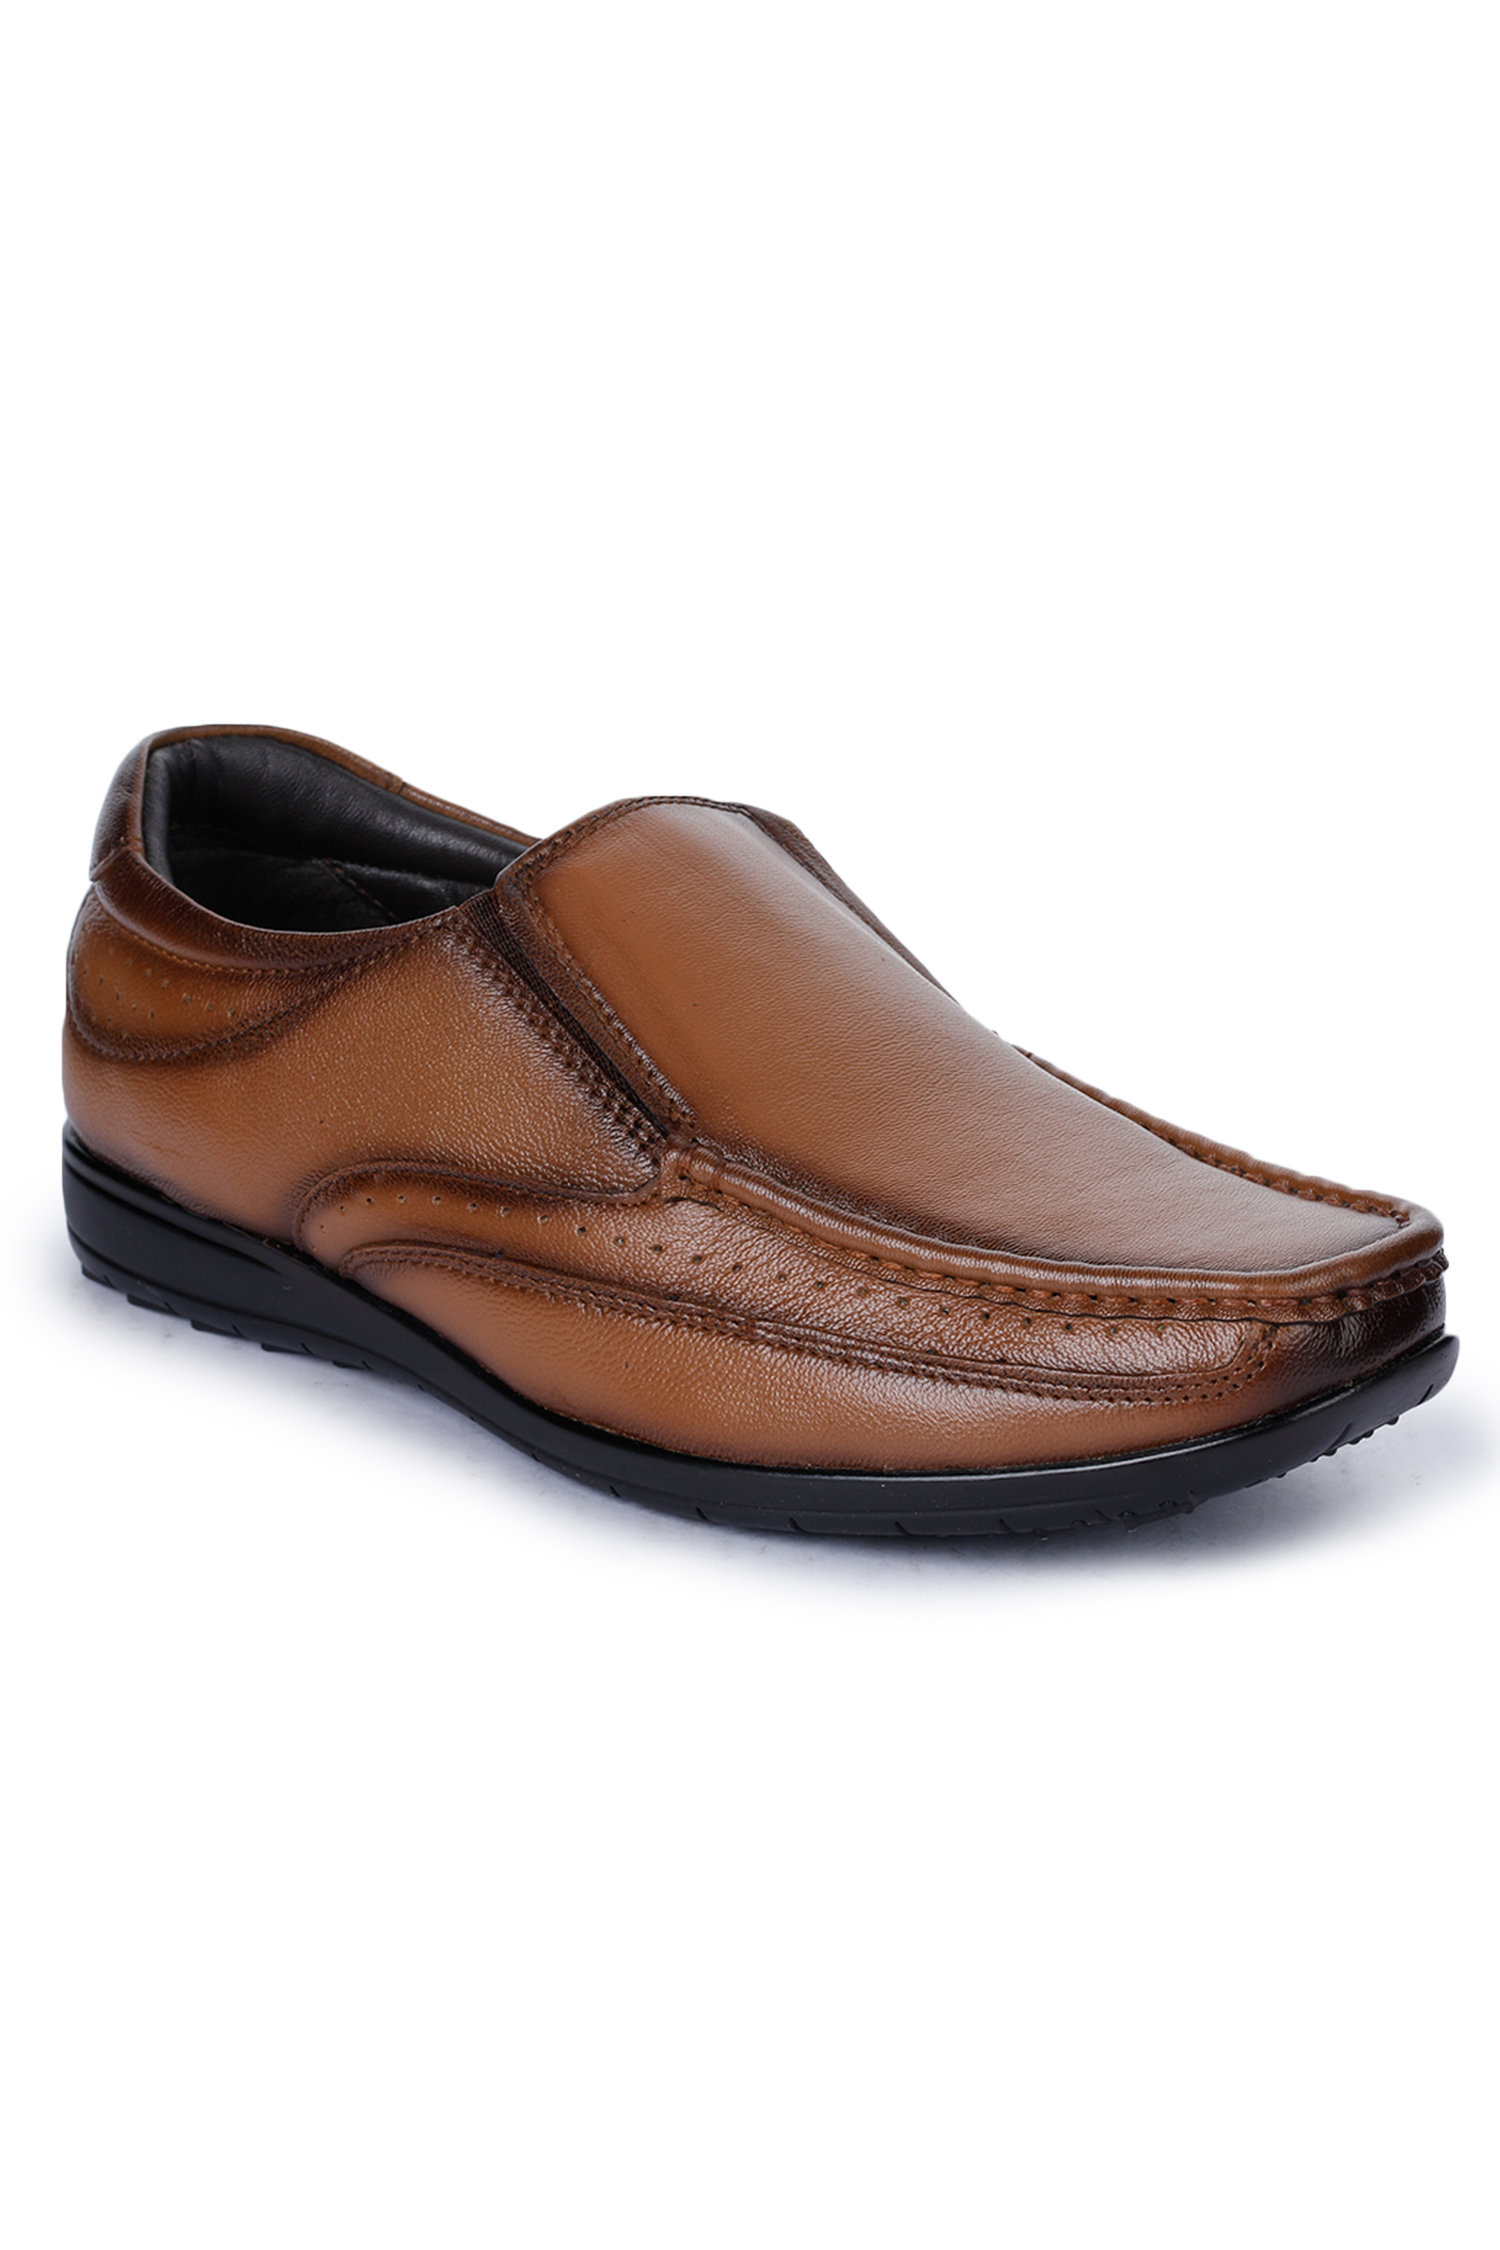 Liberty | Liberty Healers Brown Formal Oxfords Shoes FL-1415_Brown For - Men